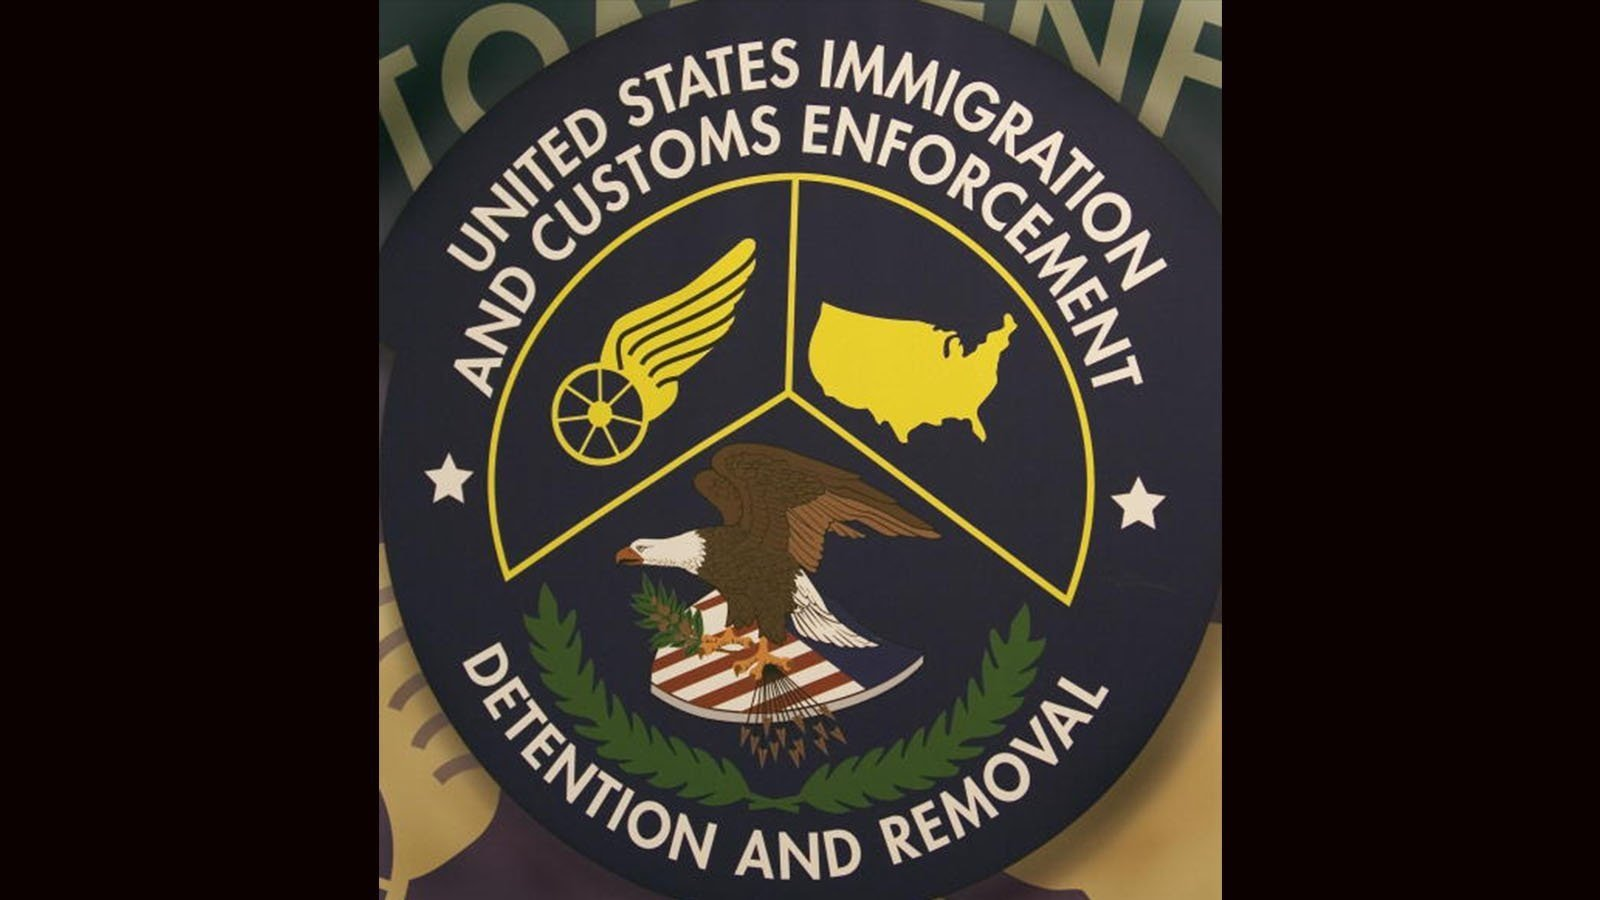 The logo of the US Homeland Security Department of Immigration and Customs Enforcement(ICE) Detention and Removal unit is seen 10 May 2007 the Willacy Detention Cention in Raymondville, Texas.